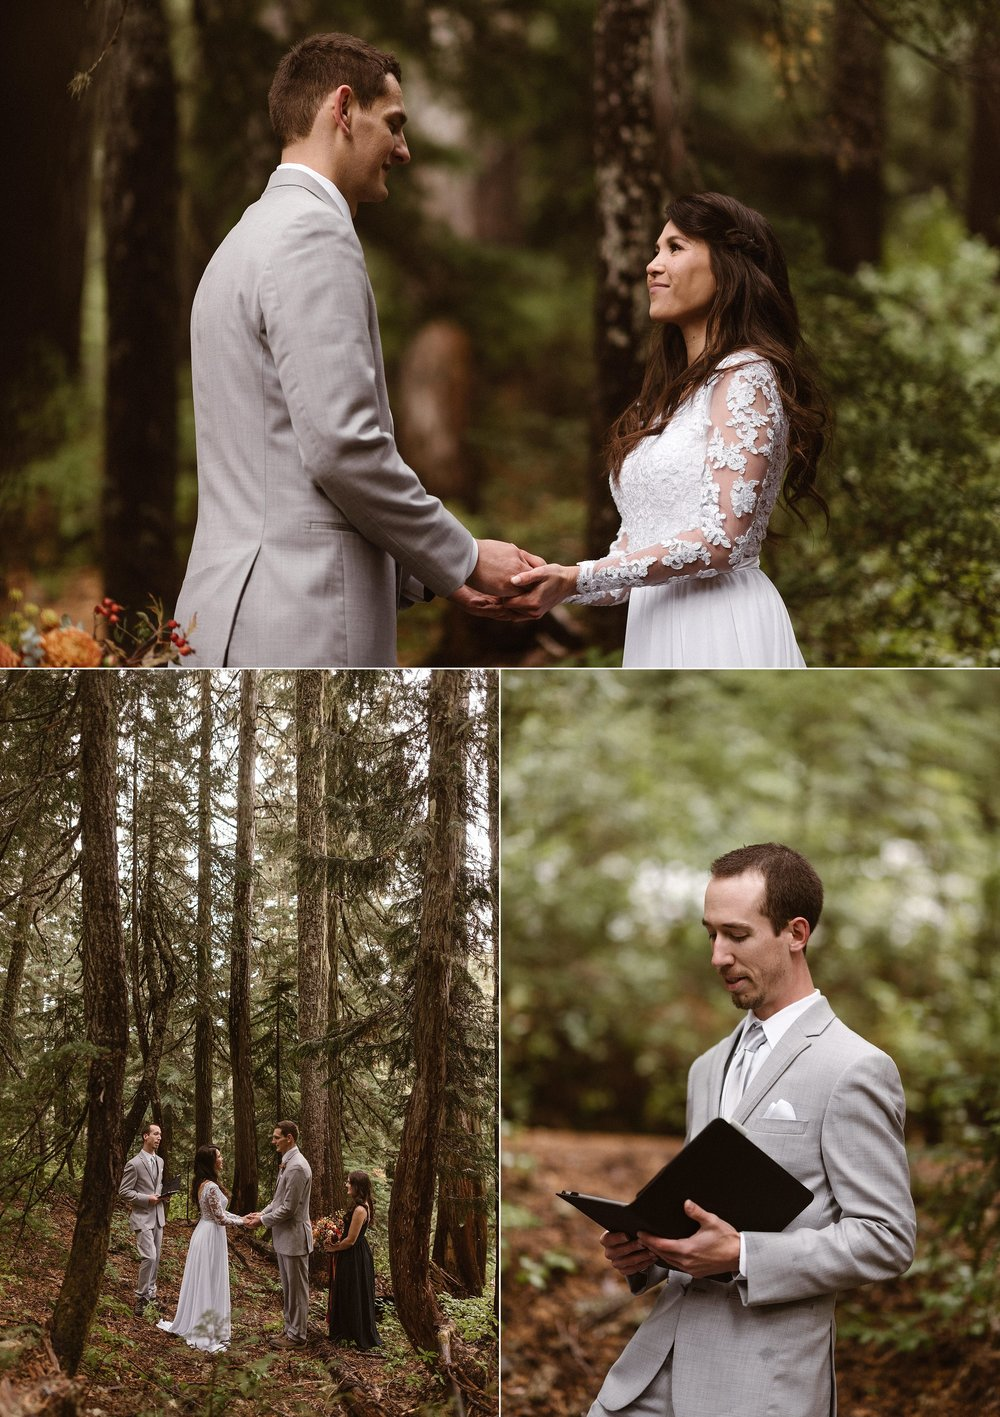 Grant's best man began their ceremony with words of love and commitment, adventure and challenges. These two adventurous souls knew they'd found their perfect match and chose to express their love in their way by eloping in Mount Rainier National Park with their two friends and intimate traveling wedding photographer Maddie Mae.